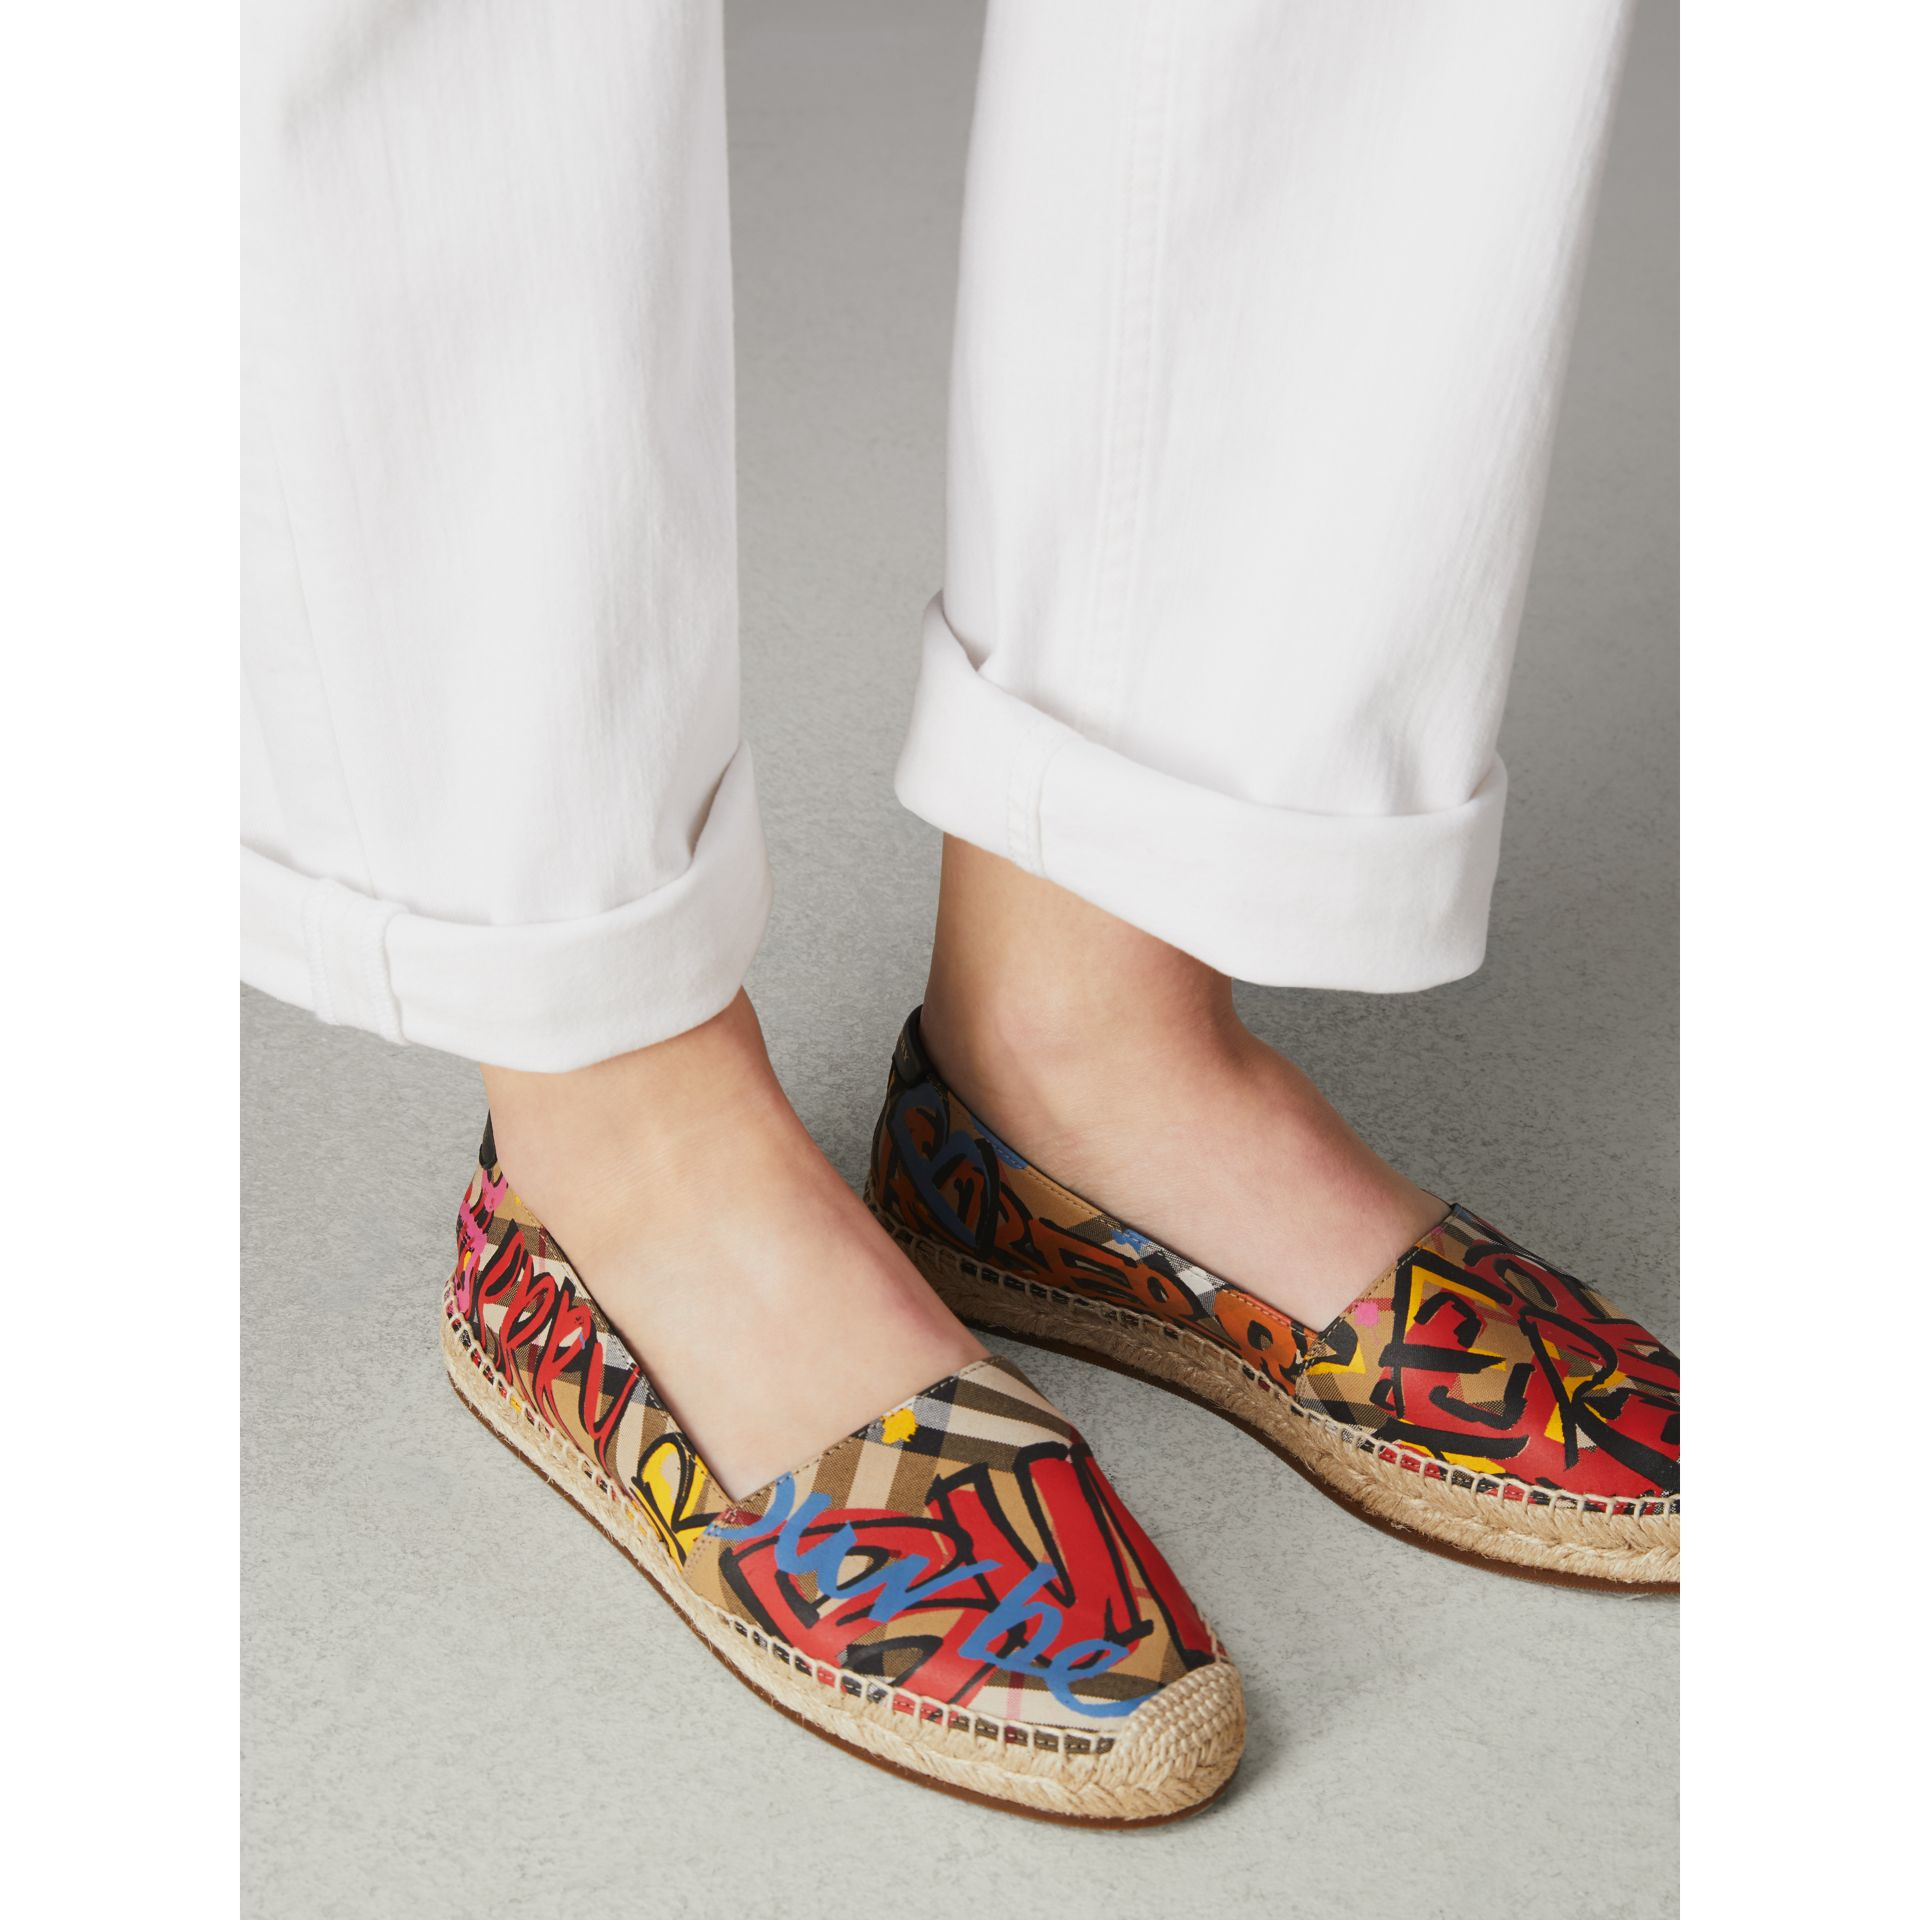 Graffiti Print Vintage Check Espadrilles in Antique Yellow - Women | Burberry United Kingdom - gallery image 2